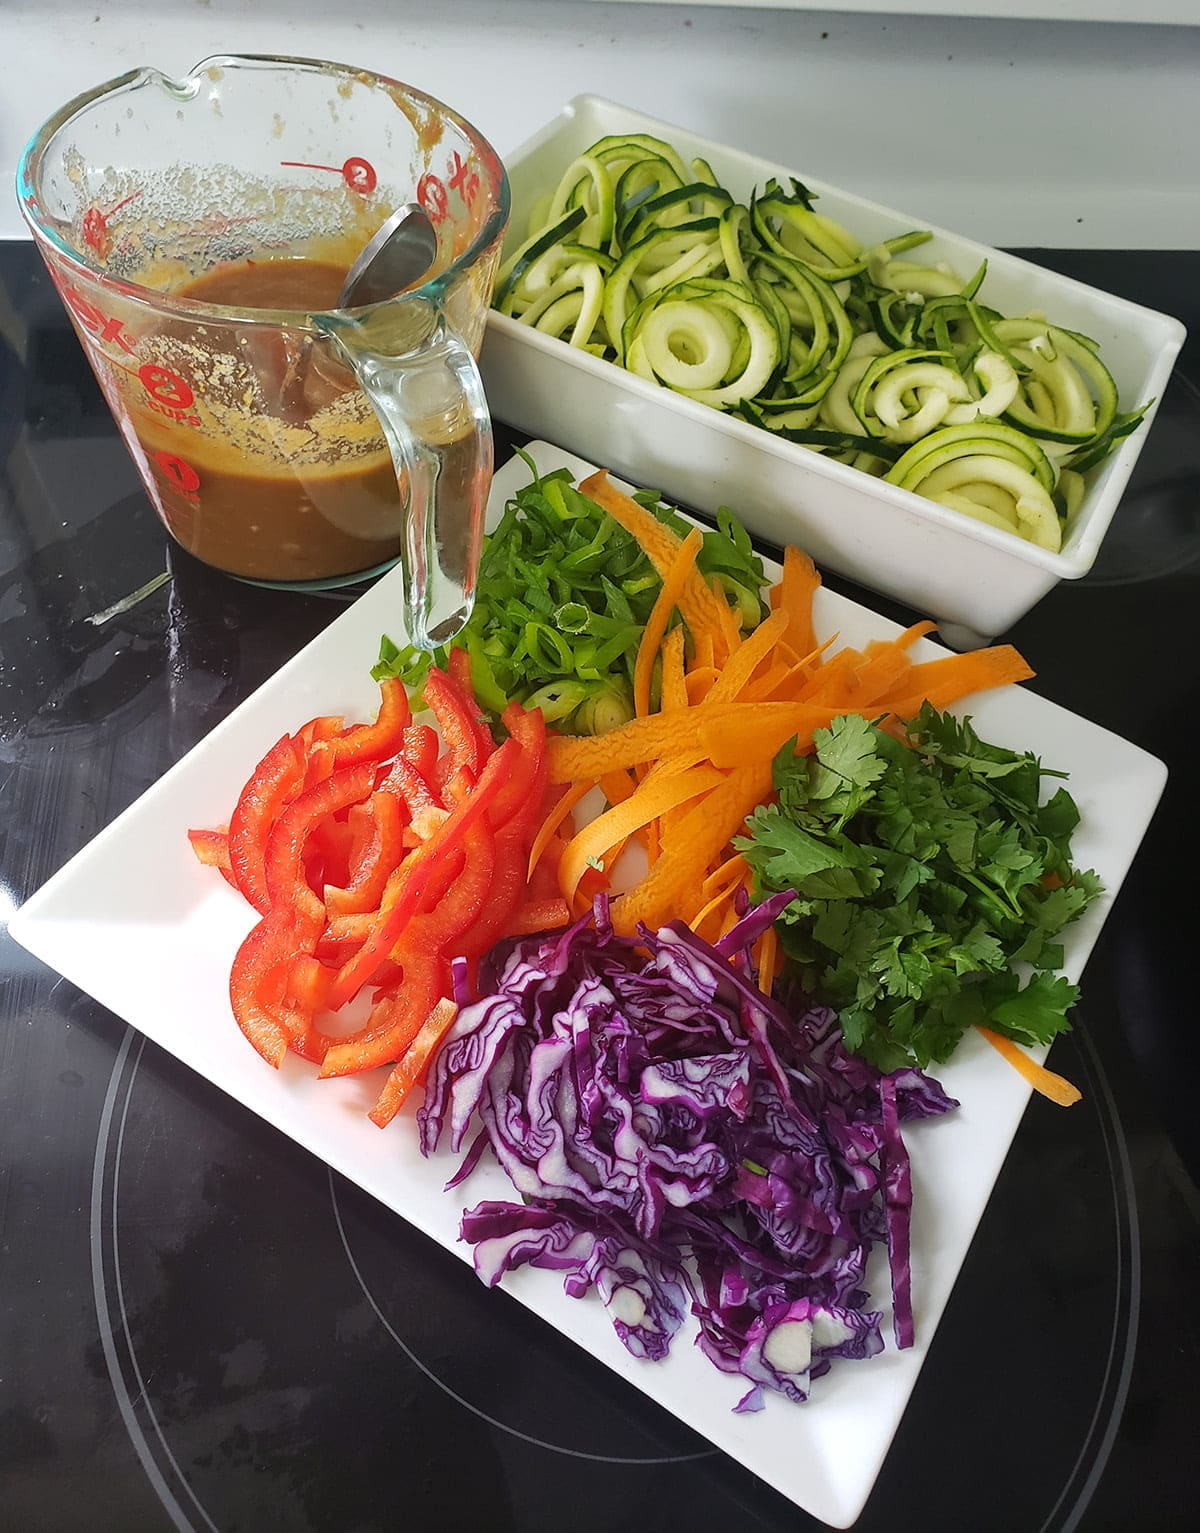 A plate of prepared veggies - thinly sliced red pepper and purple cabbage, ribbons of carrots, sliced green onions, and chopped cilantro. In the background is a glass measuring cup full of peanut sauce, and a tray with spiralized zucchini in it.